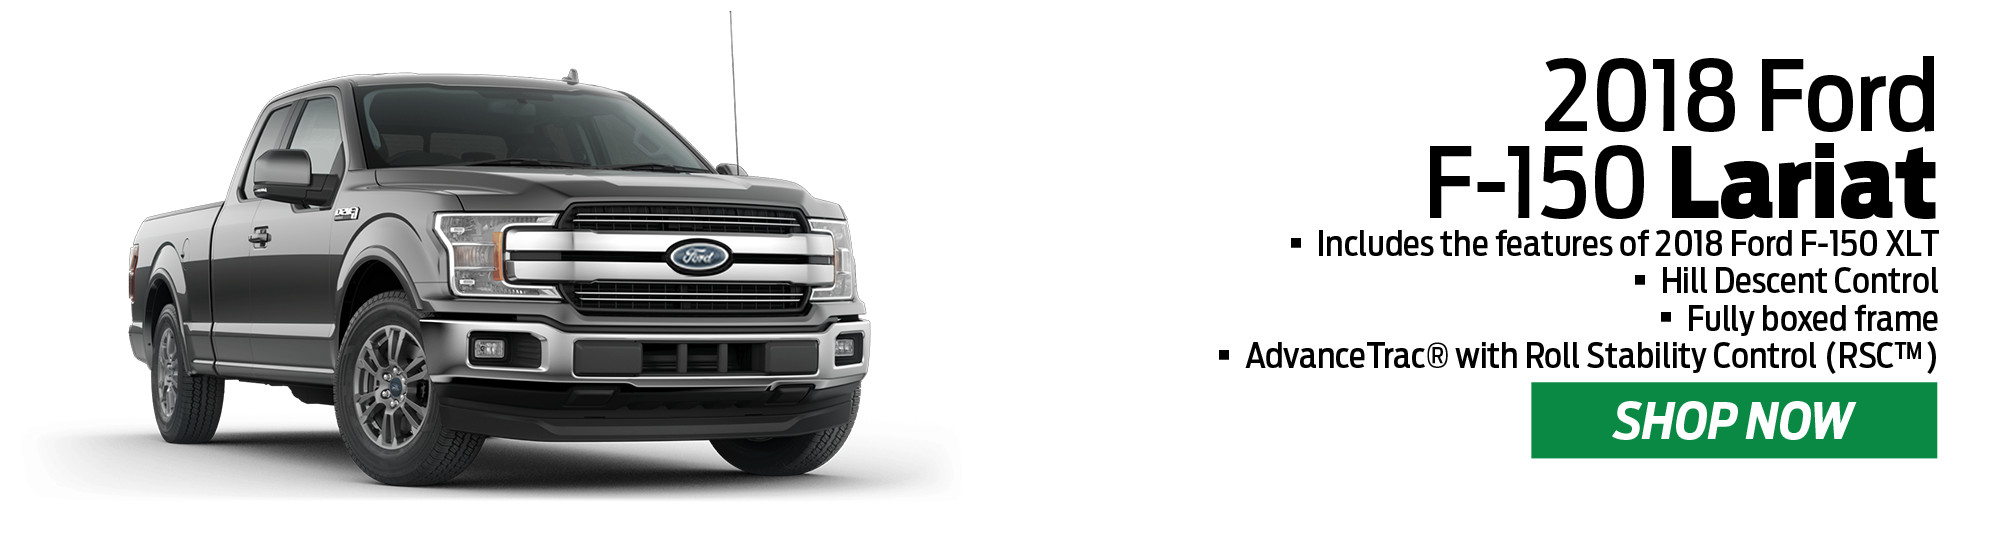 2018 Ford F-150 Trim Levels - Wiscasset Ford